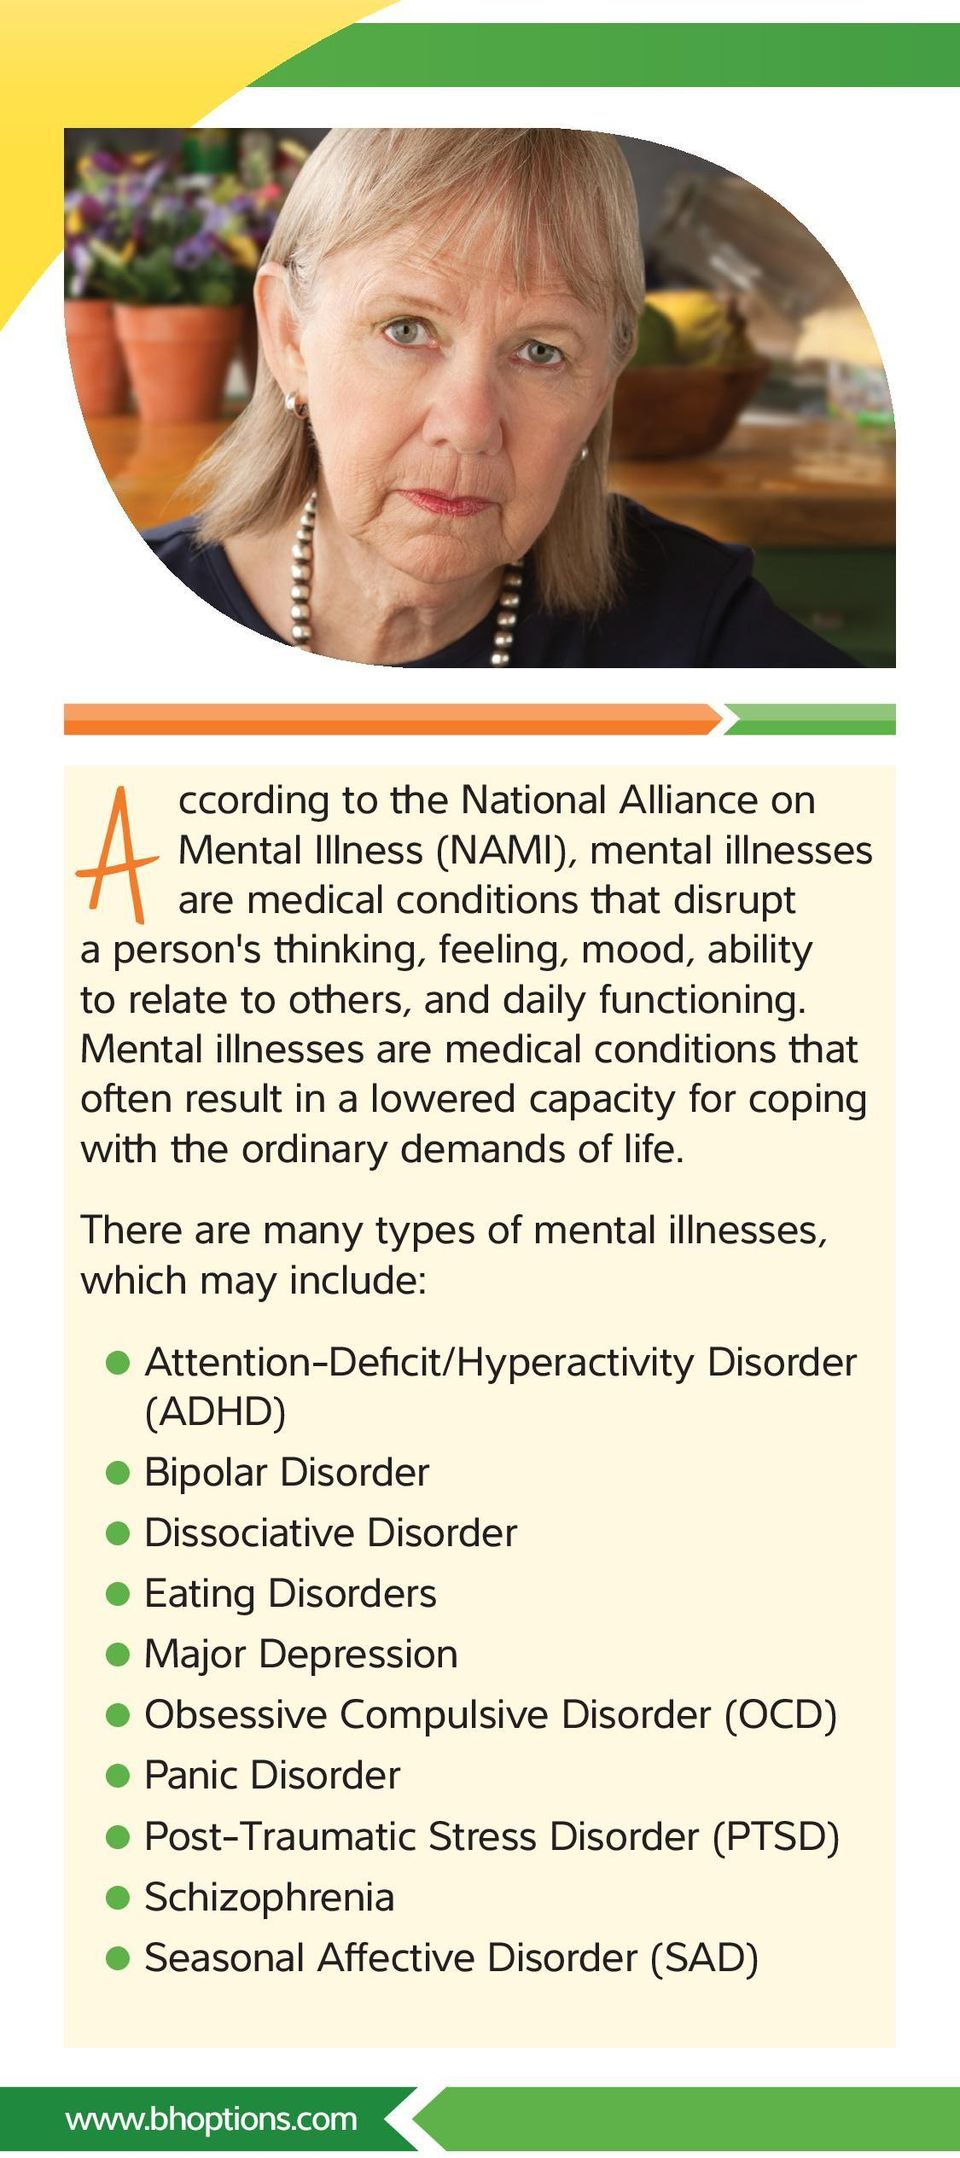 There are many types of mental illnesses, which may include: Attention-Deficit/Hyperactivity Disorder (ADHD) Bipolar Disorder Dissociative Disorder Eating Disorders